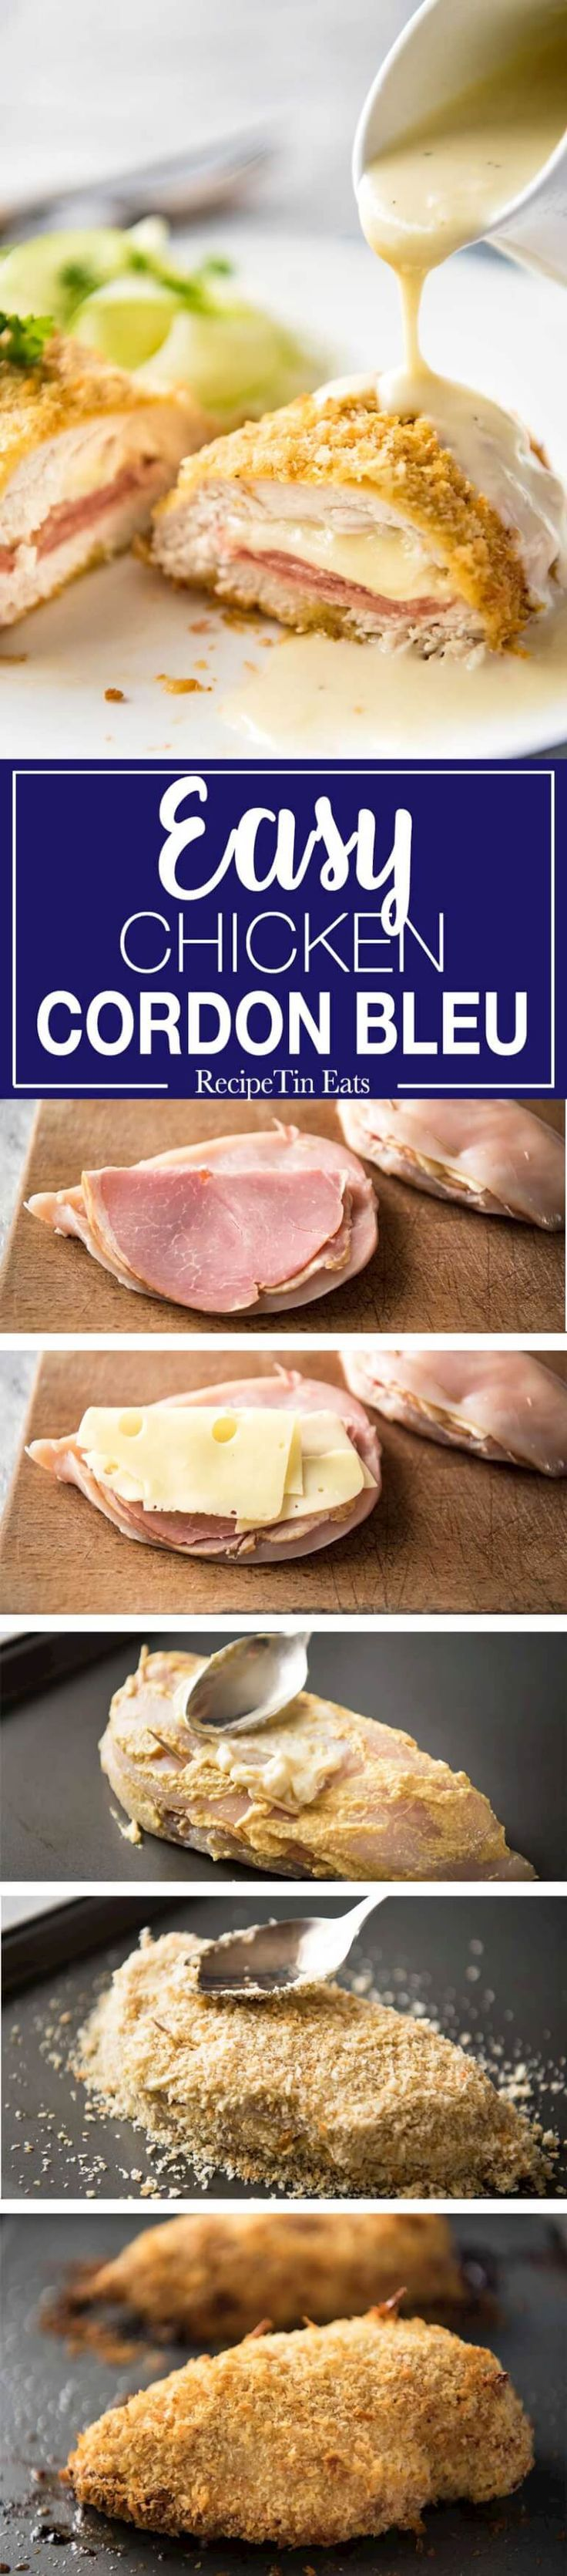 Chicken Cordon Bleu Easy Fancy